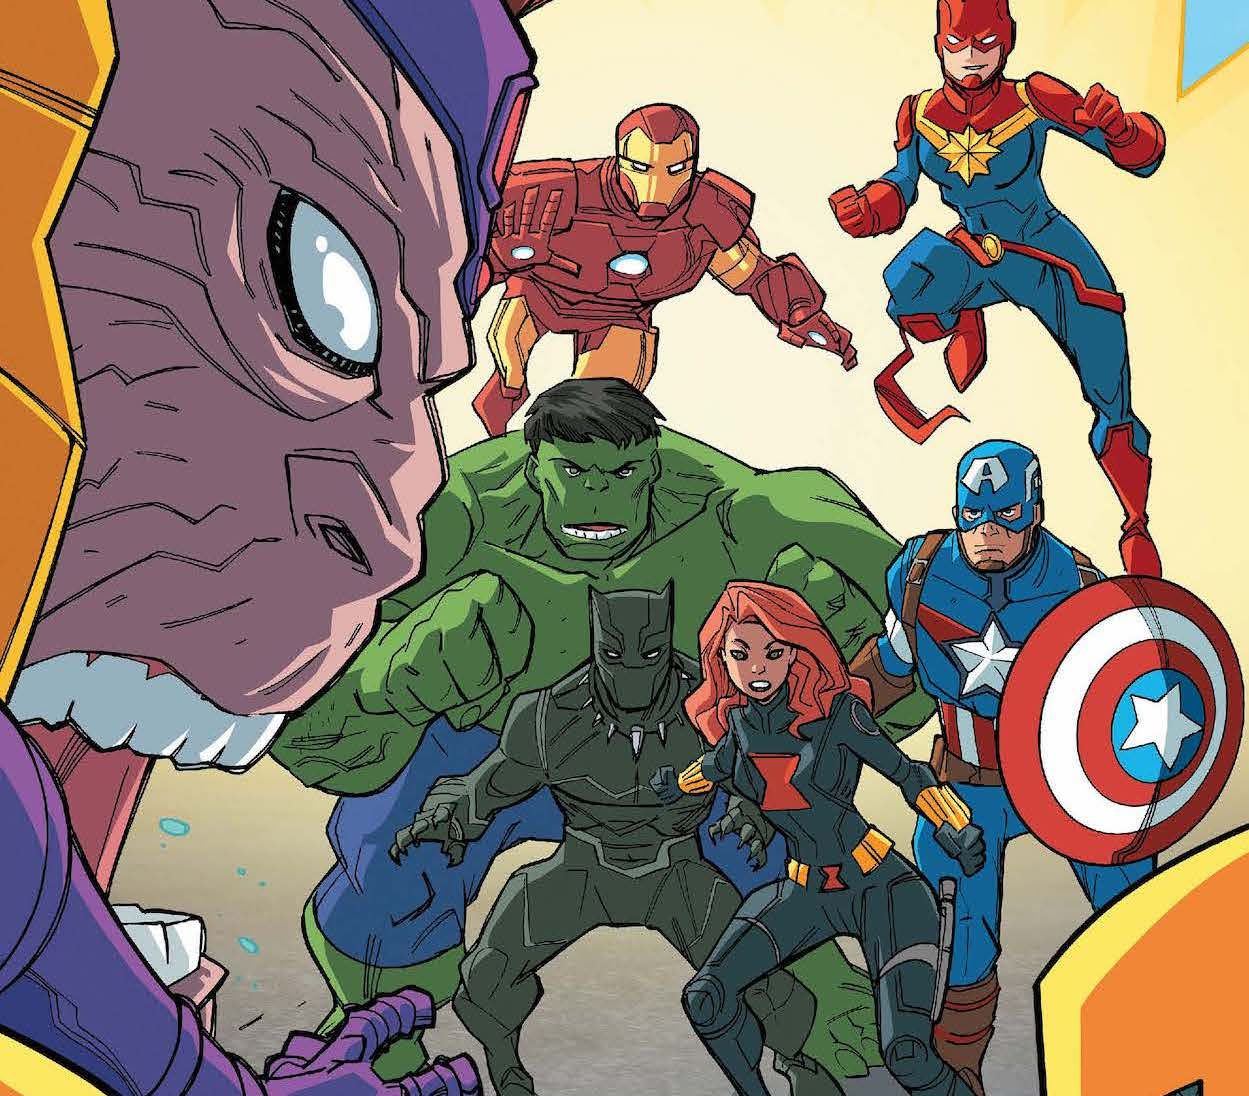 Marvel and SOMOS to distribute 20,000 comics for vaccine awareness